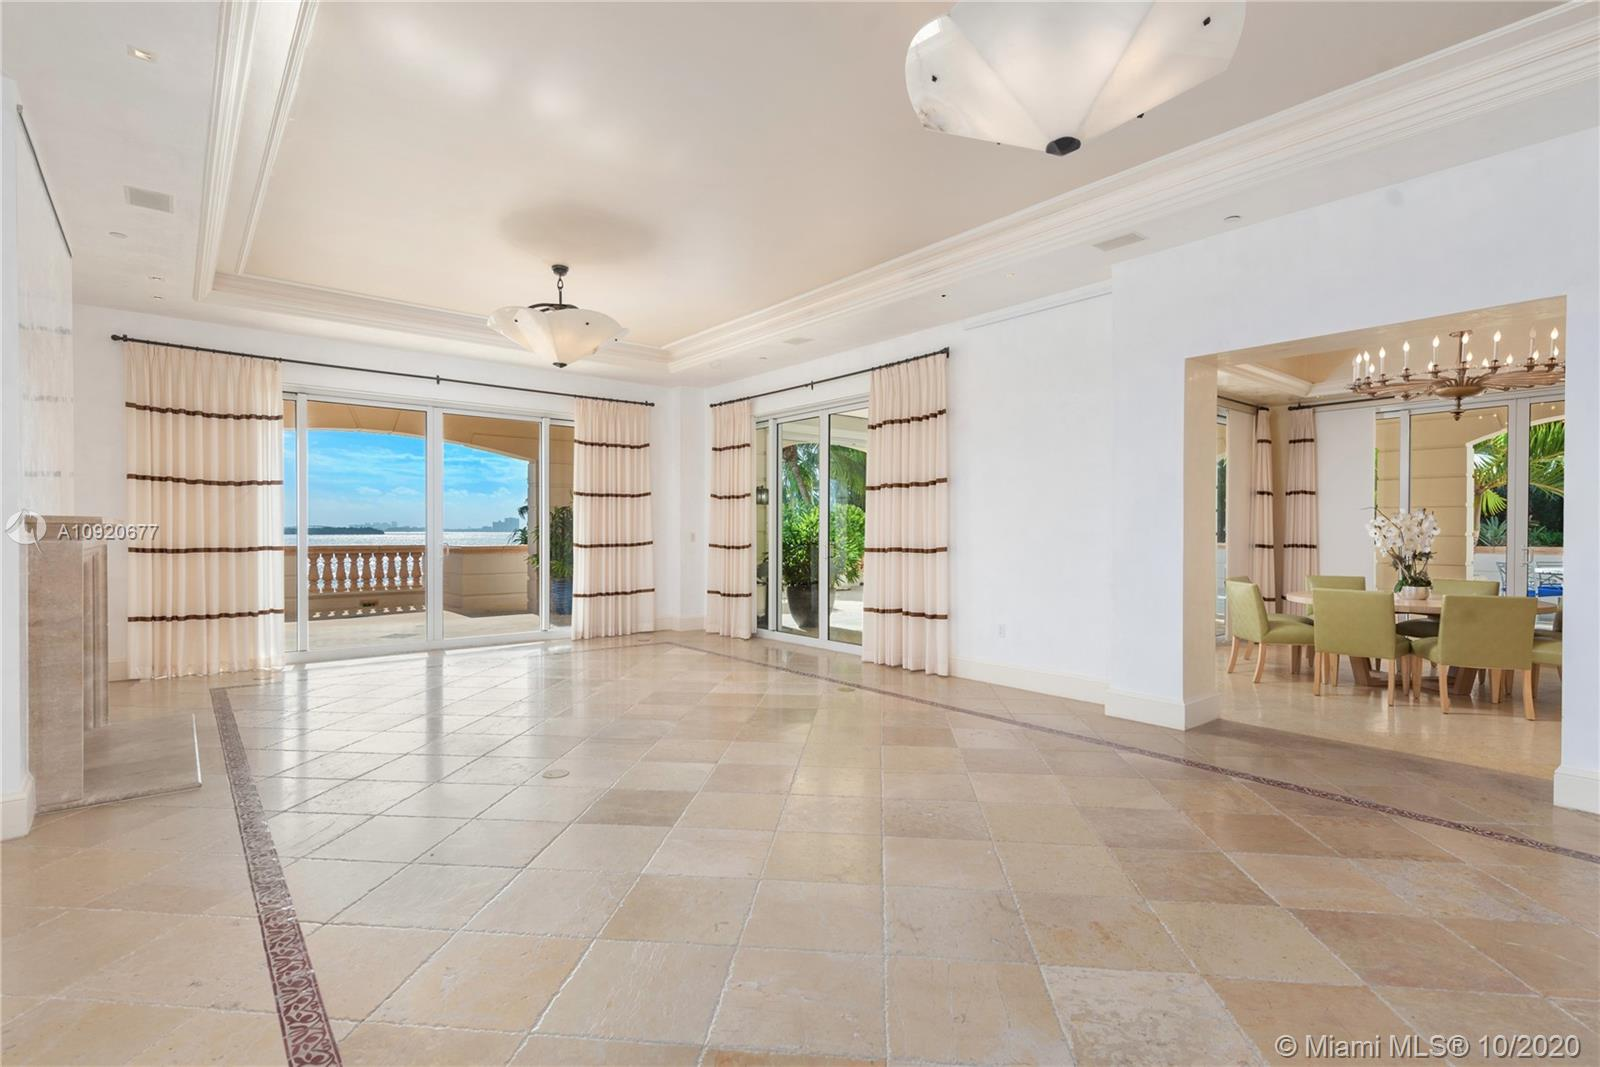 5113 Fisher Island Dr, Unit #5113 Luxury Real Estate